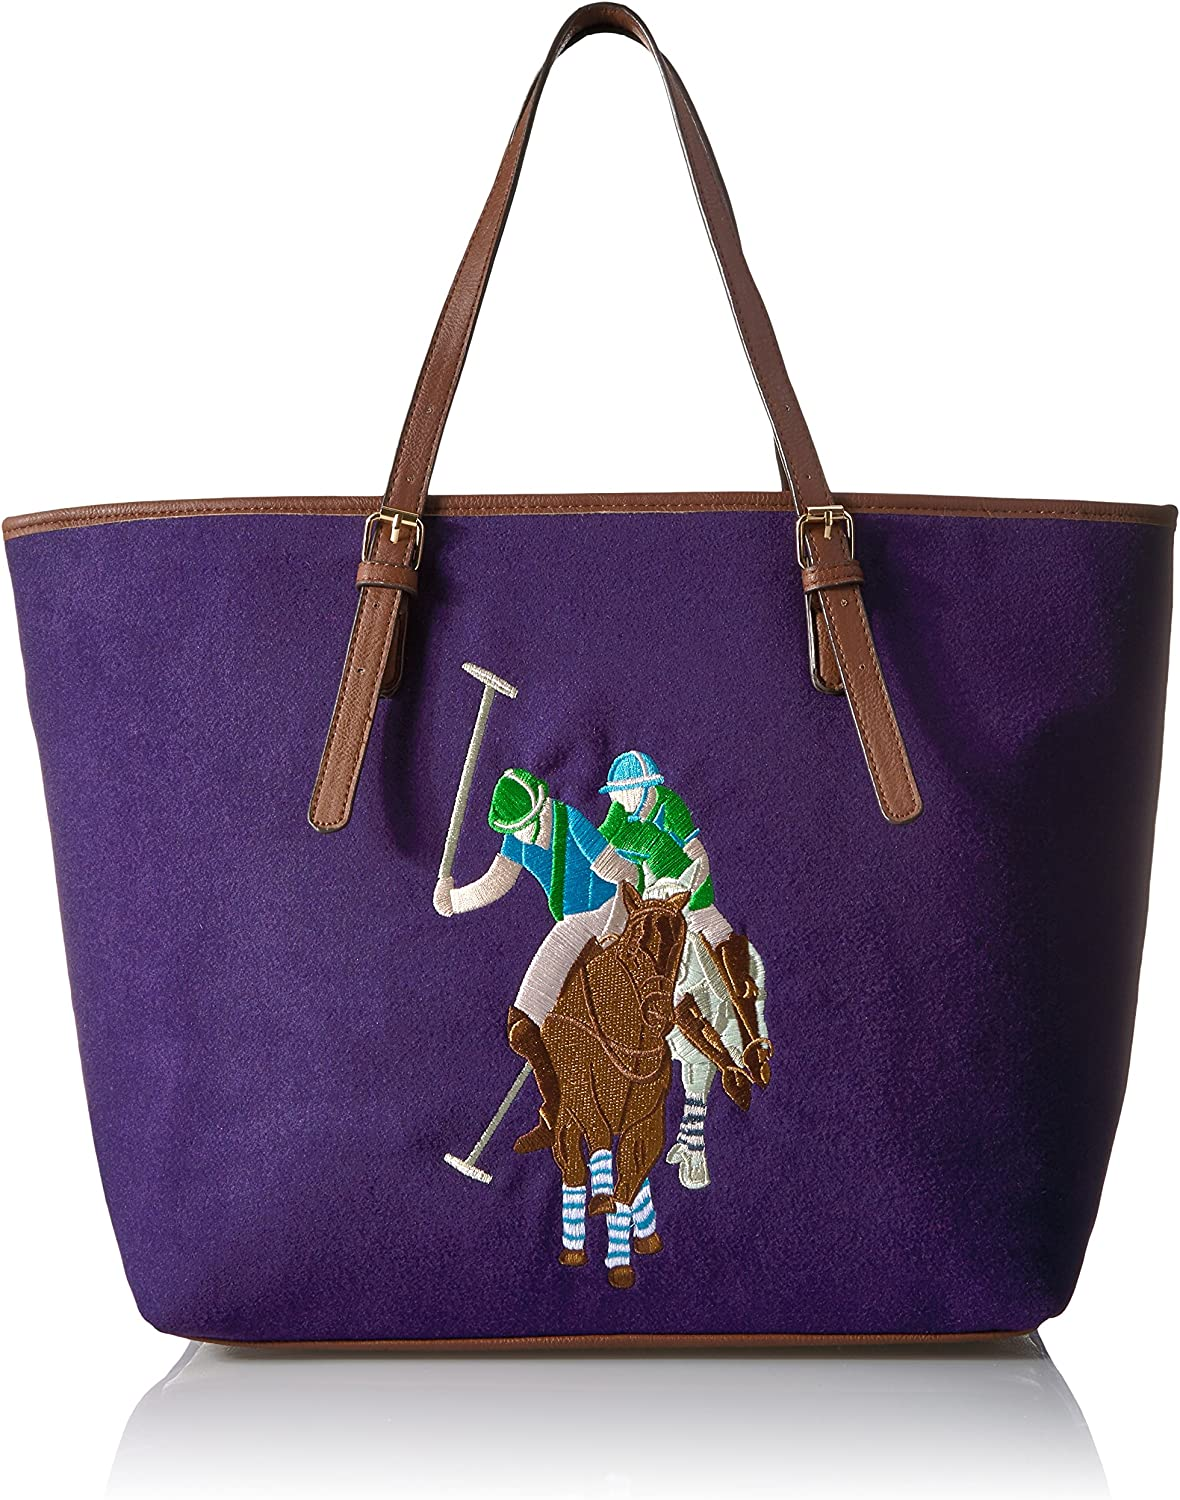 US POLO Association Wyatt Tote